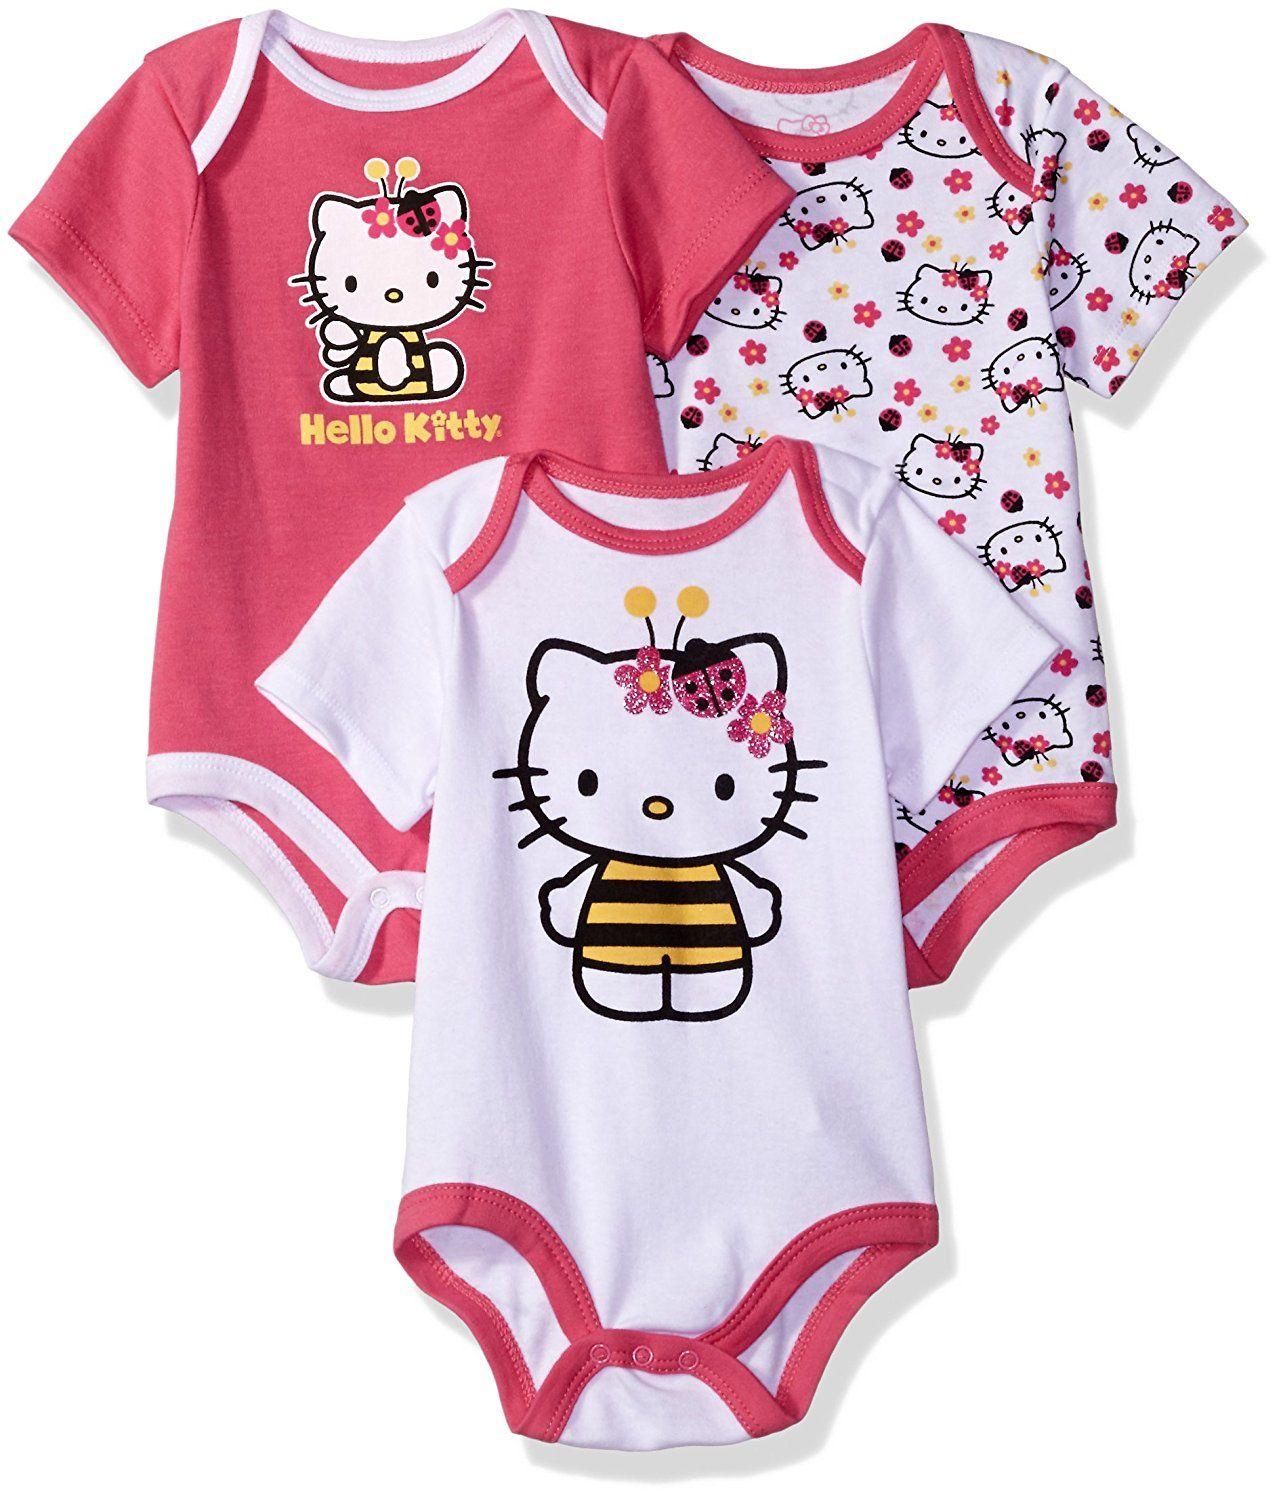 a7934613b Hello Kitty Girls' 3 Pack Boysuits -- Review more details here : Baby  clothes